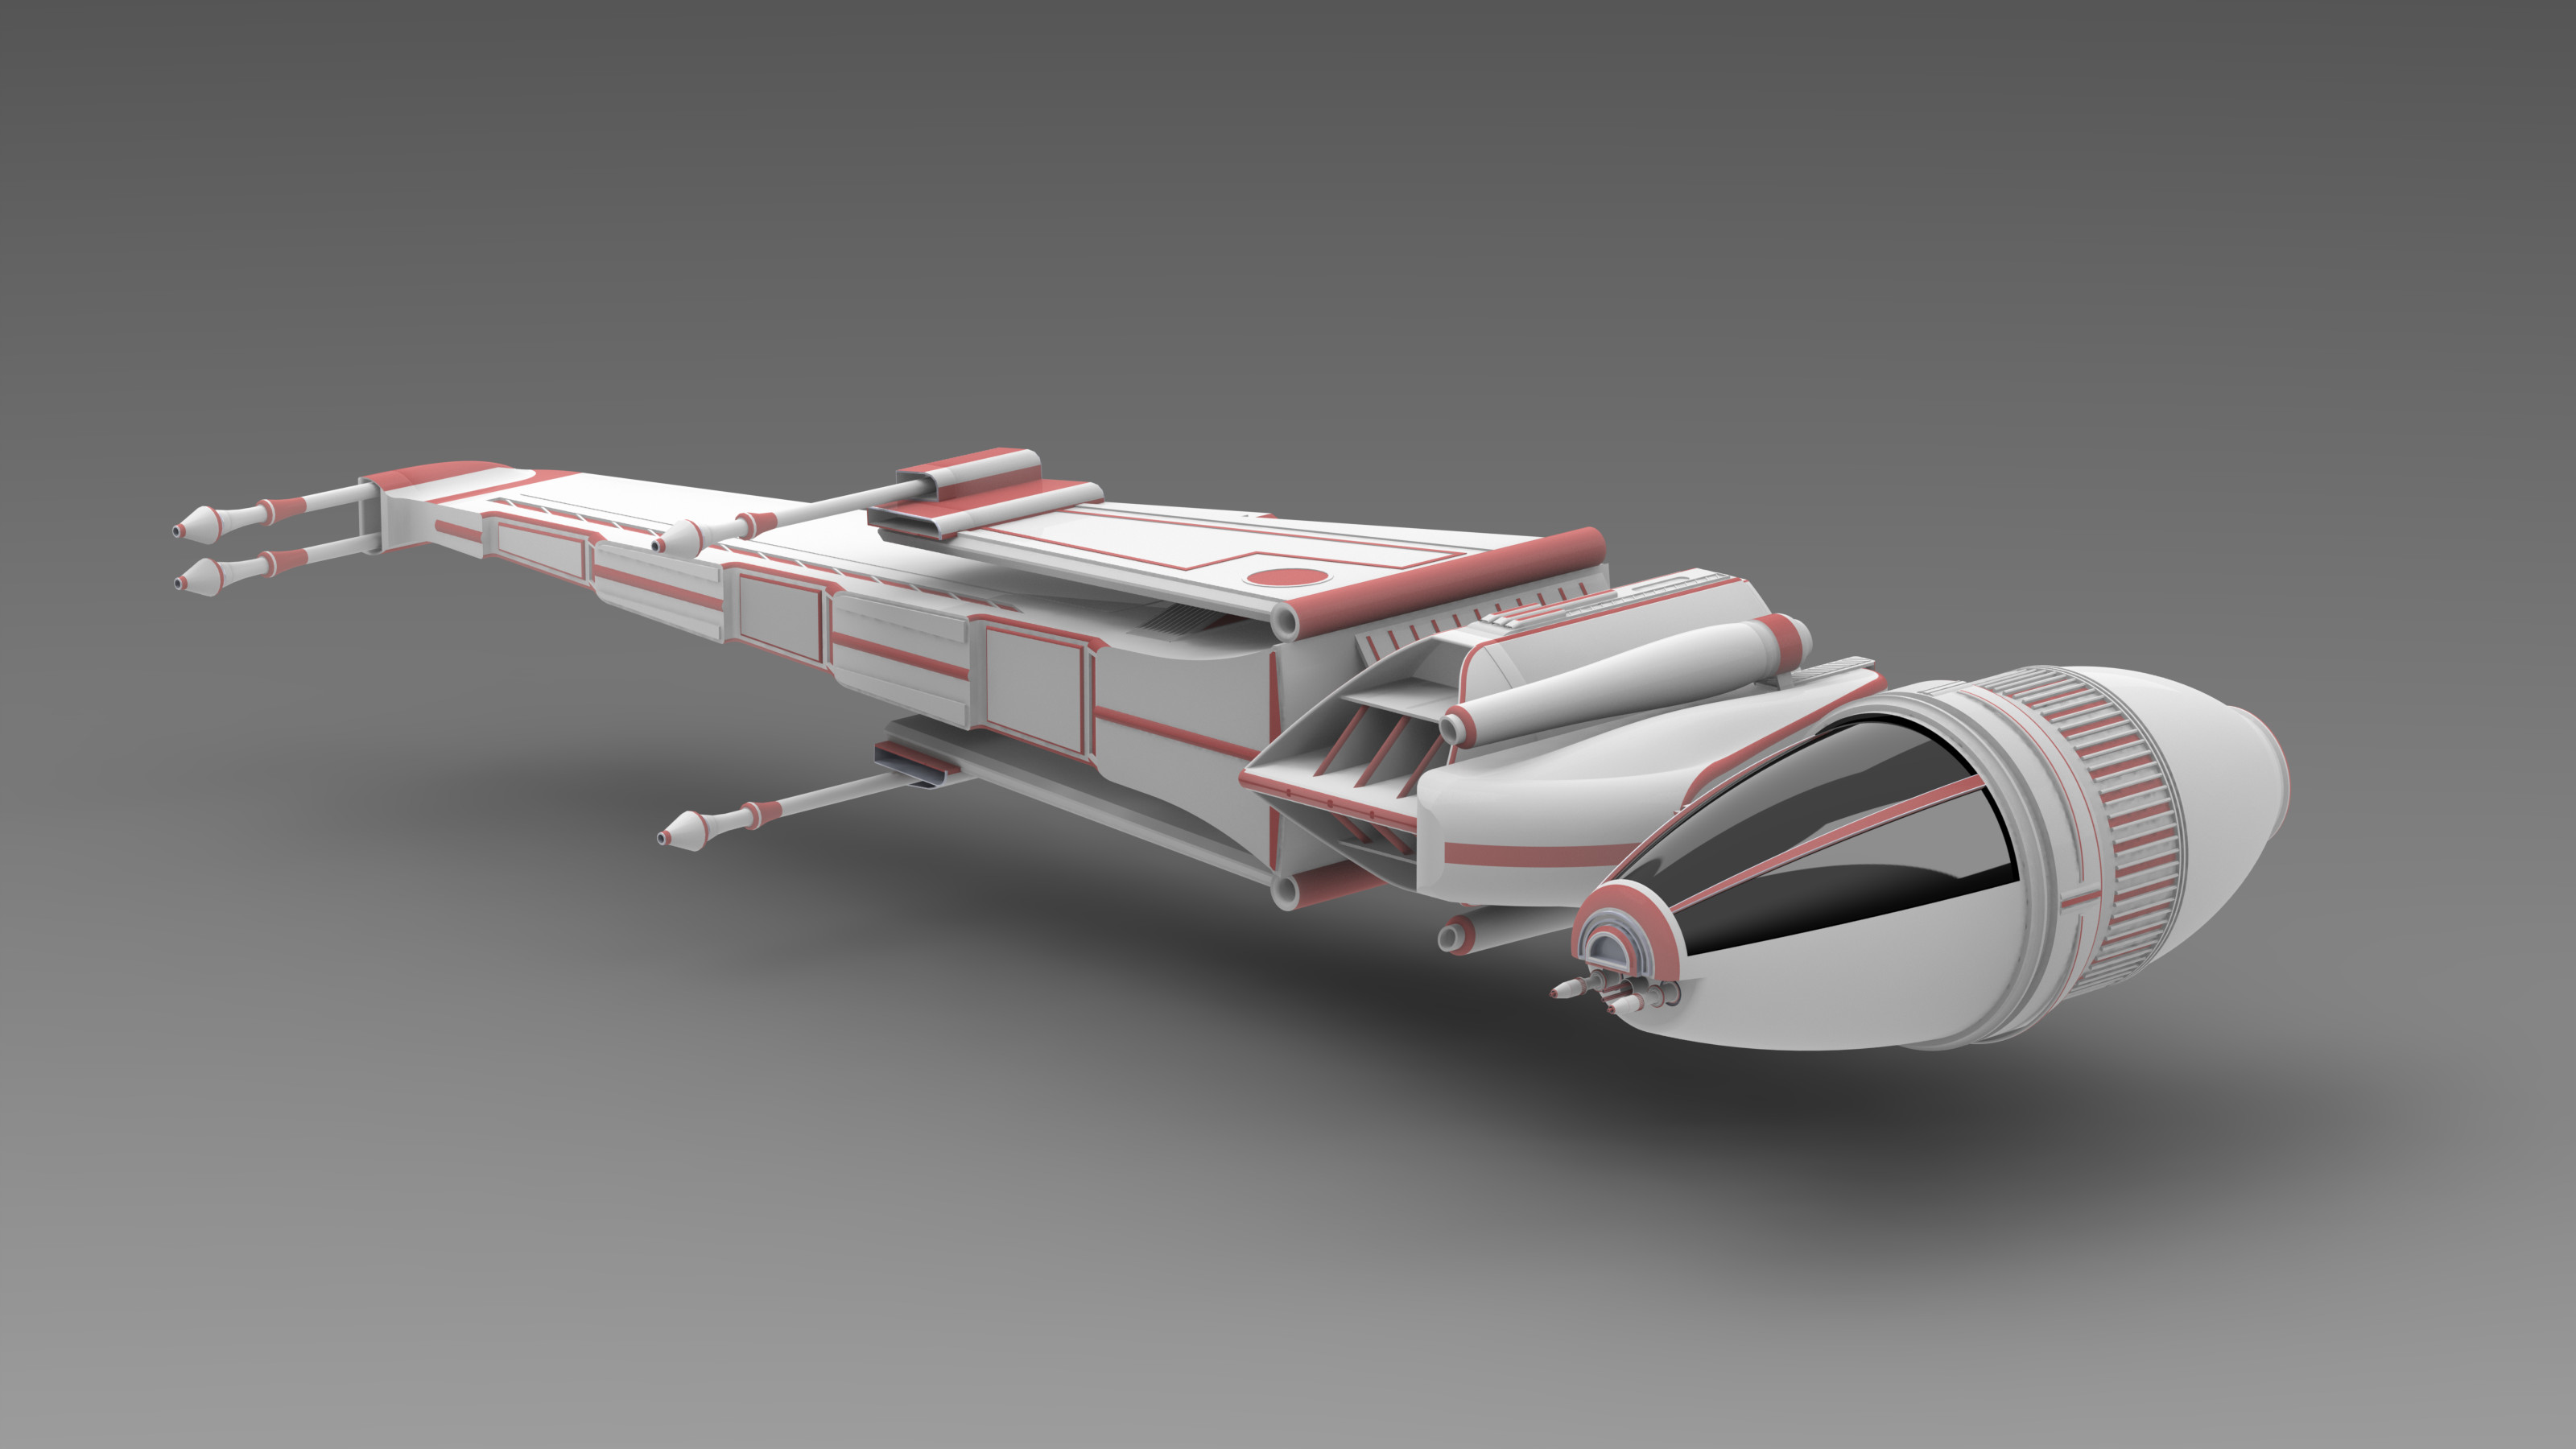 star wars b-wing star fighter concept by Republic2033 on